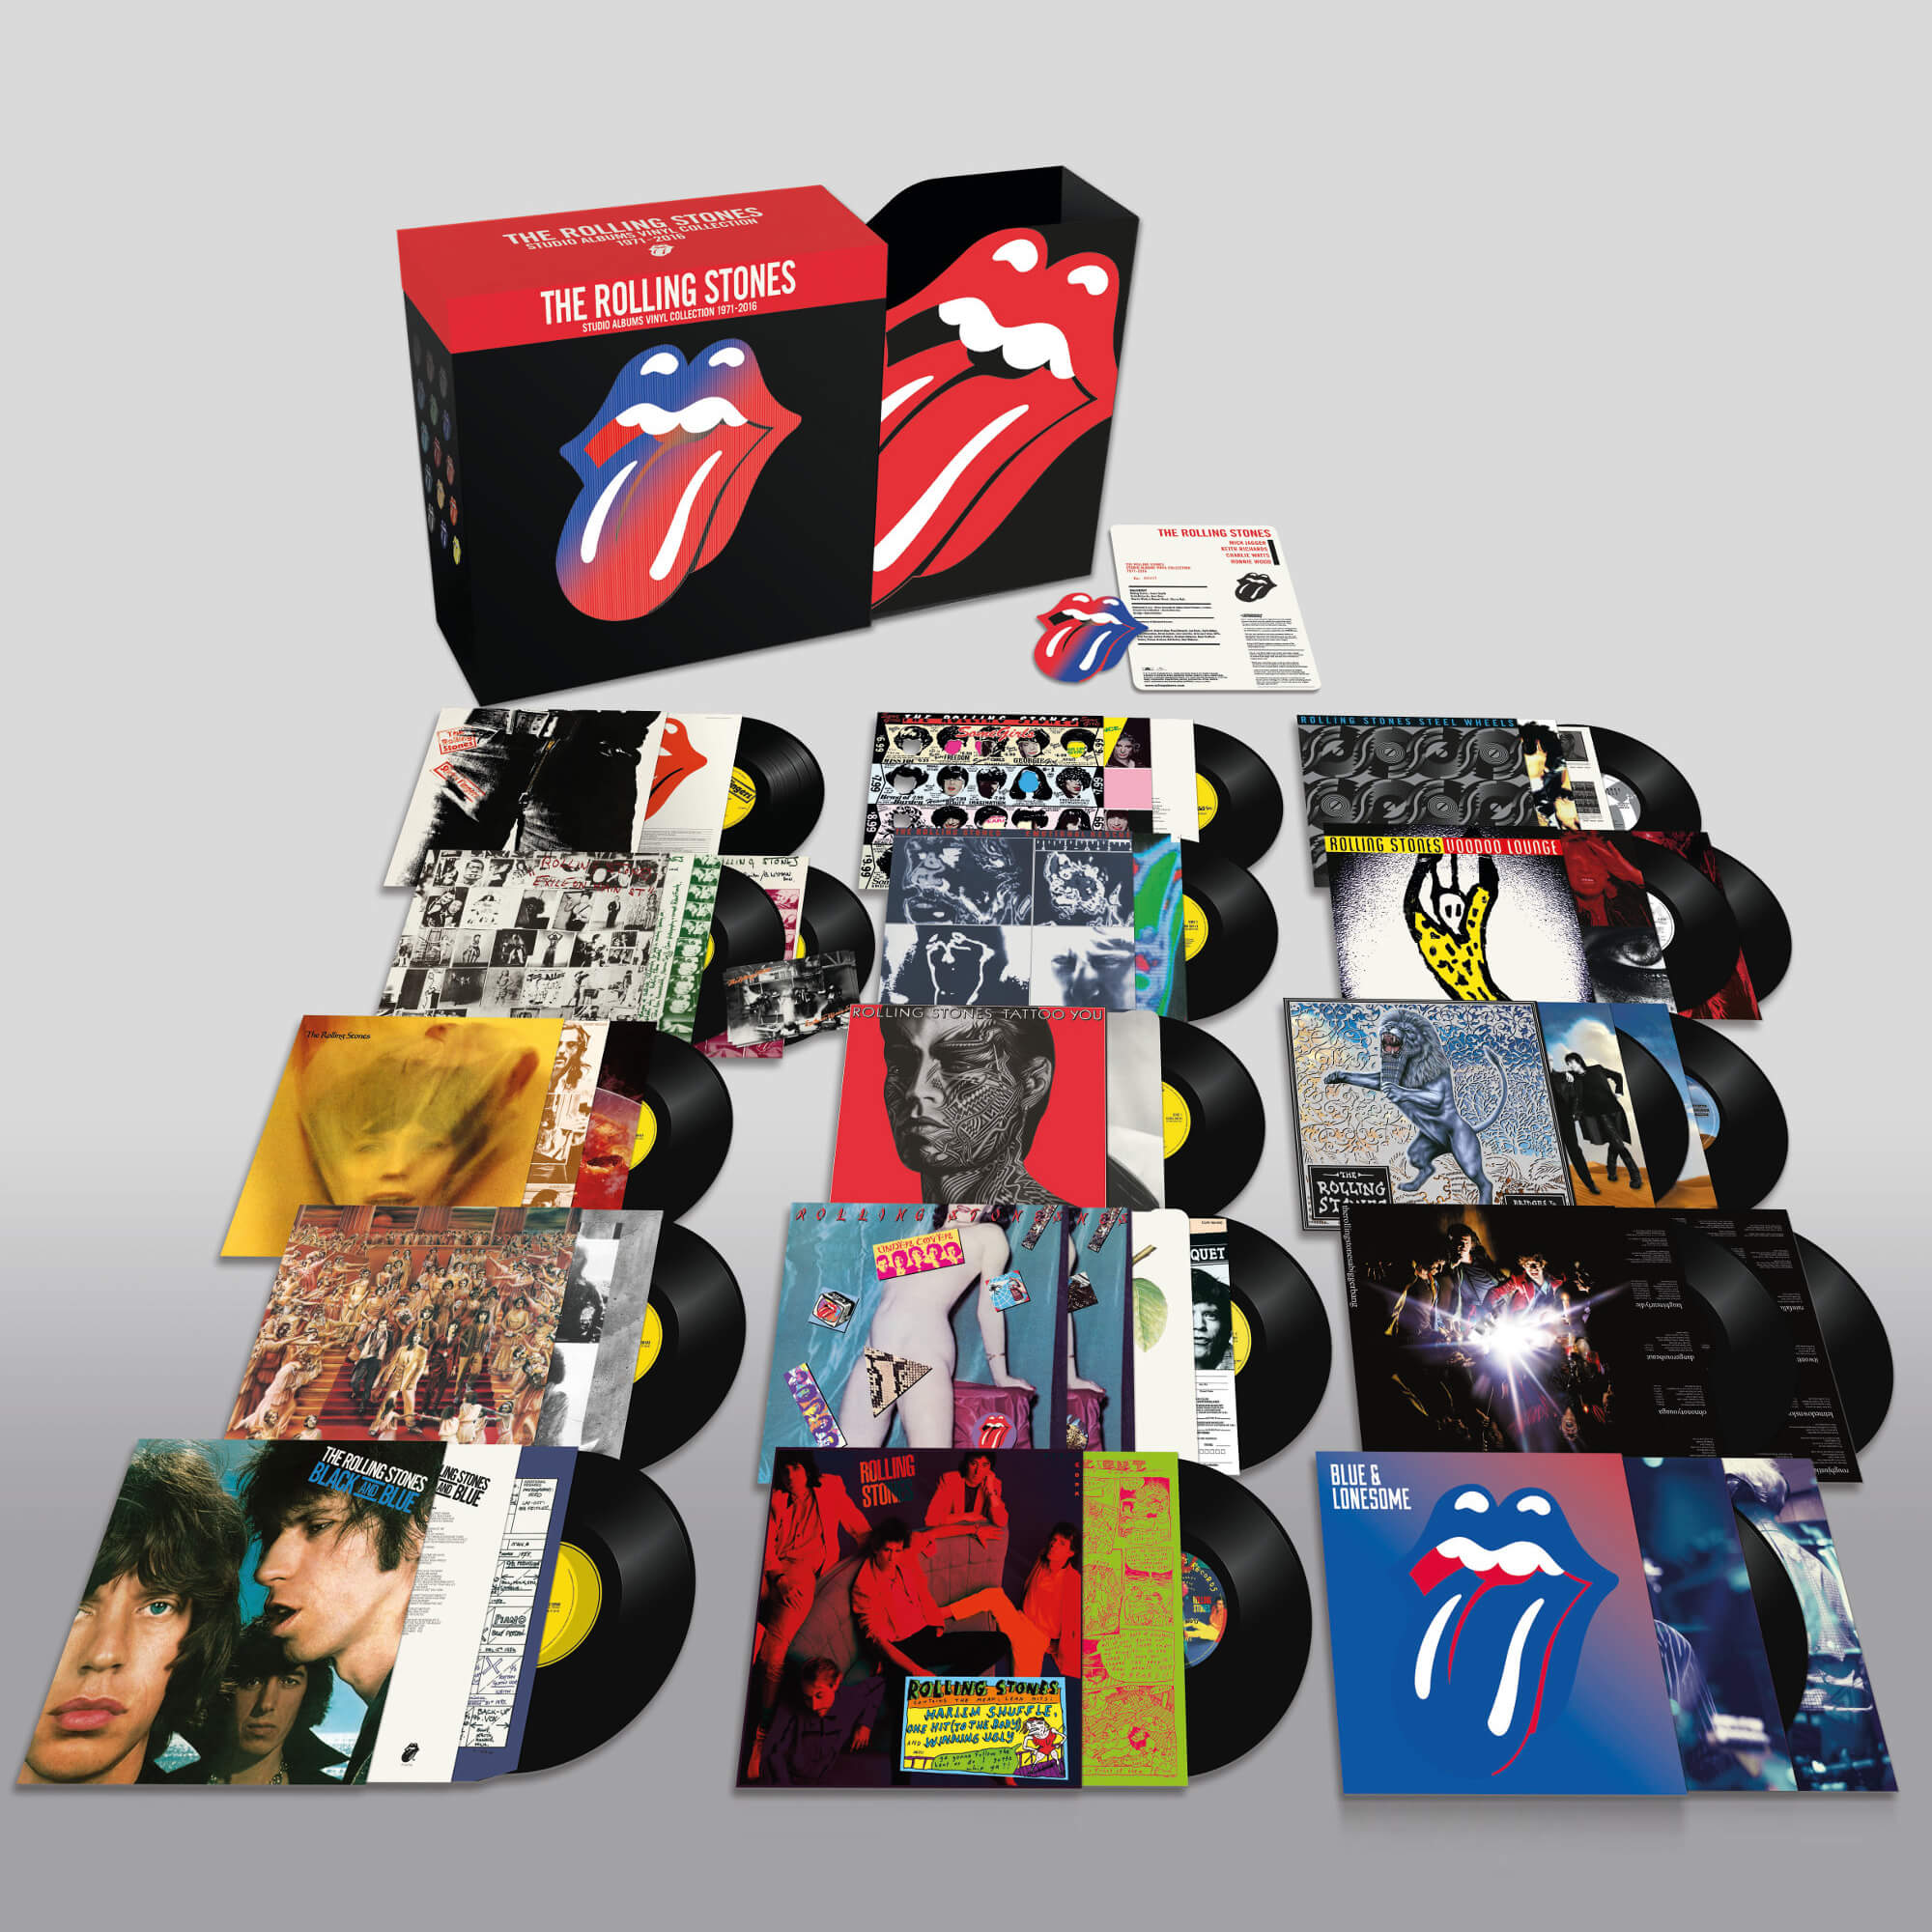 The Rolling Stones - Studio Albums Vinyl Collection 1971 - 2016